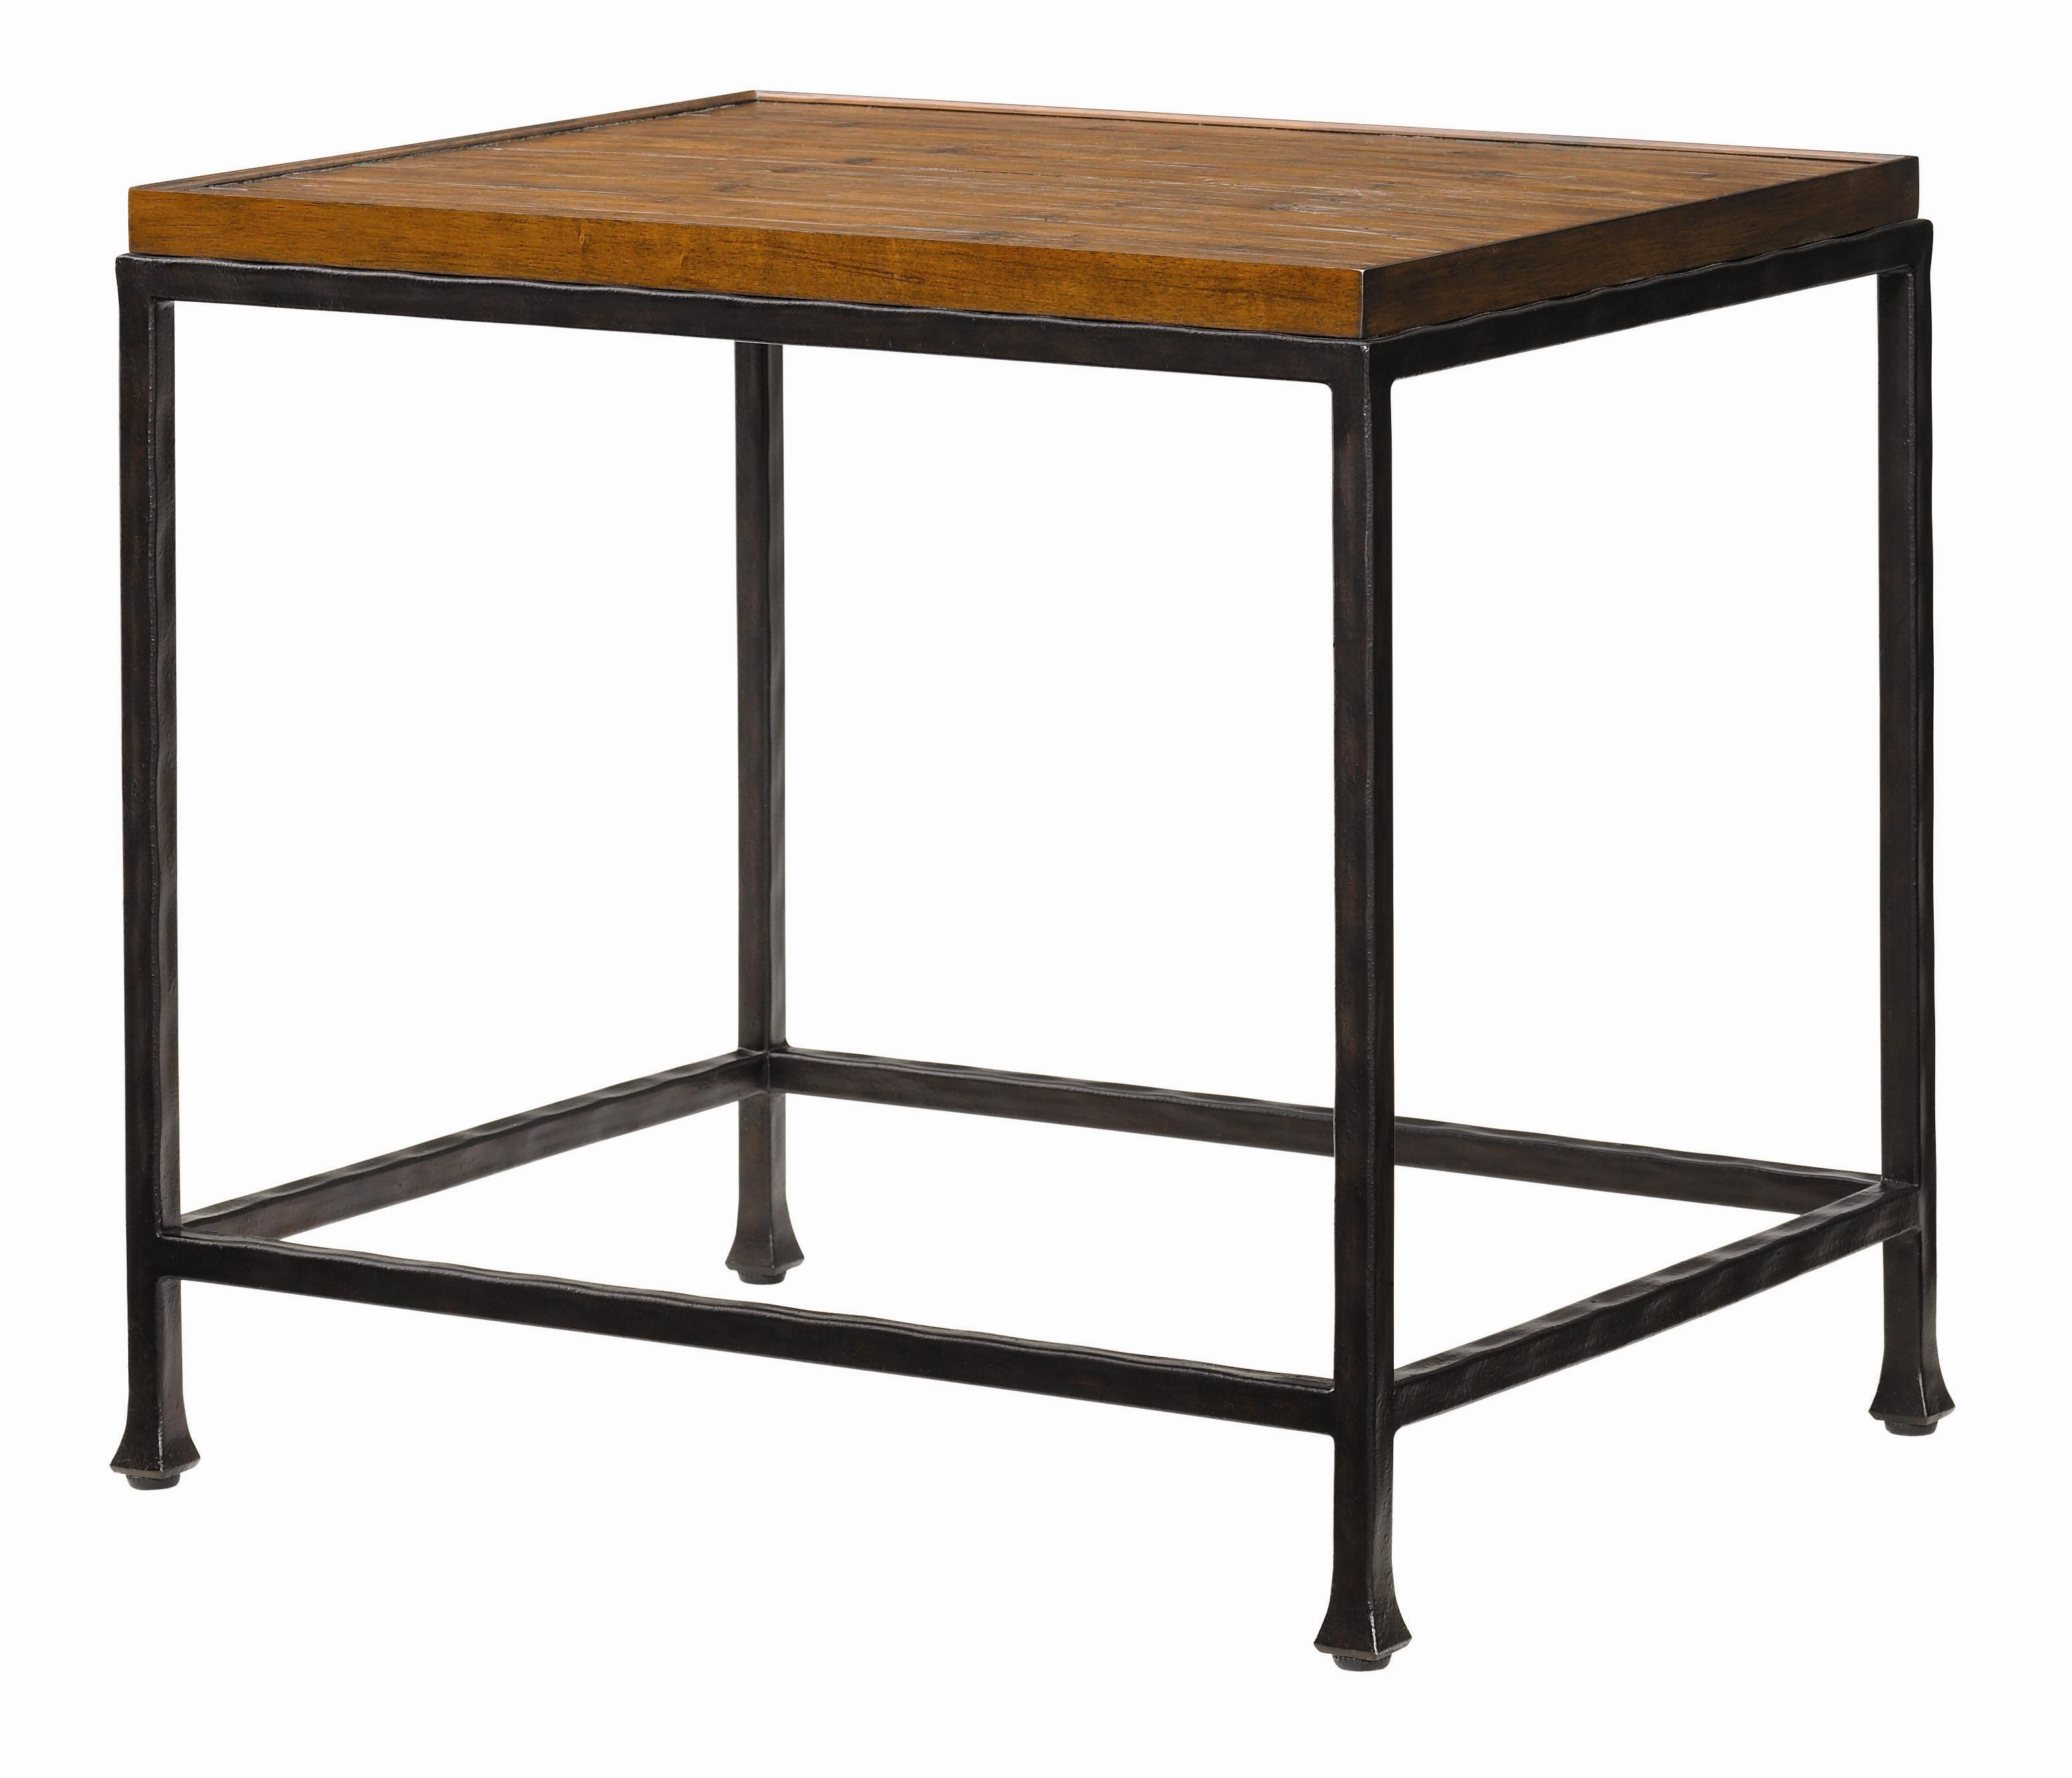 Ocean Club Ocean Reef End Table by Tommy Bahama Home at Baer's Furniture